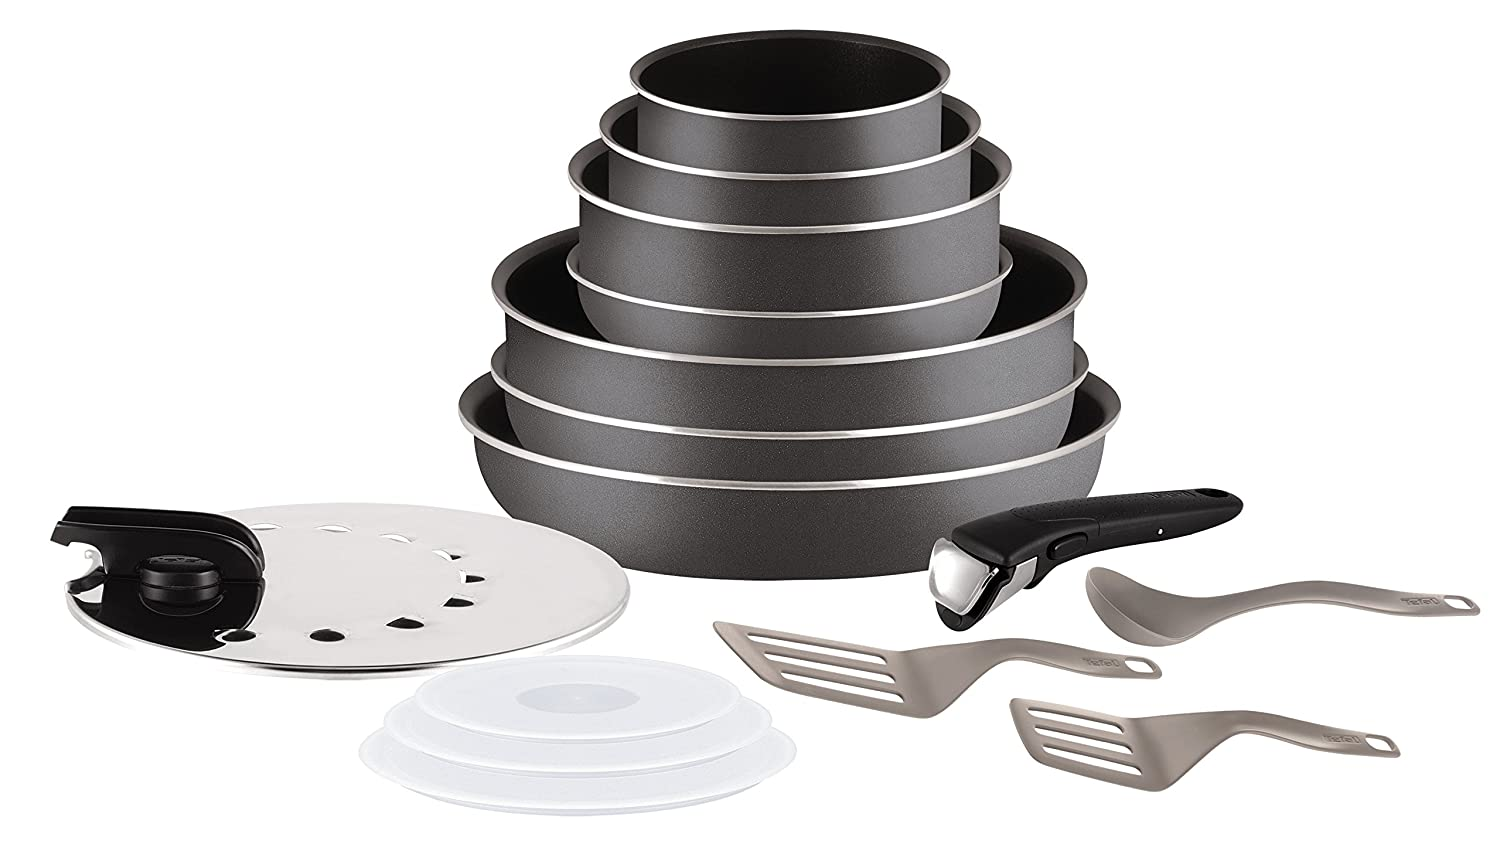 Tefal Ingenio l2048802Minute Set 15Pieces All Heat Sources Except Induction, Grey Anthracite